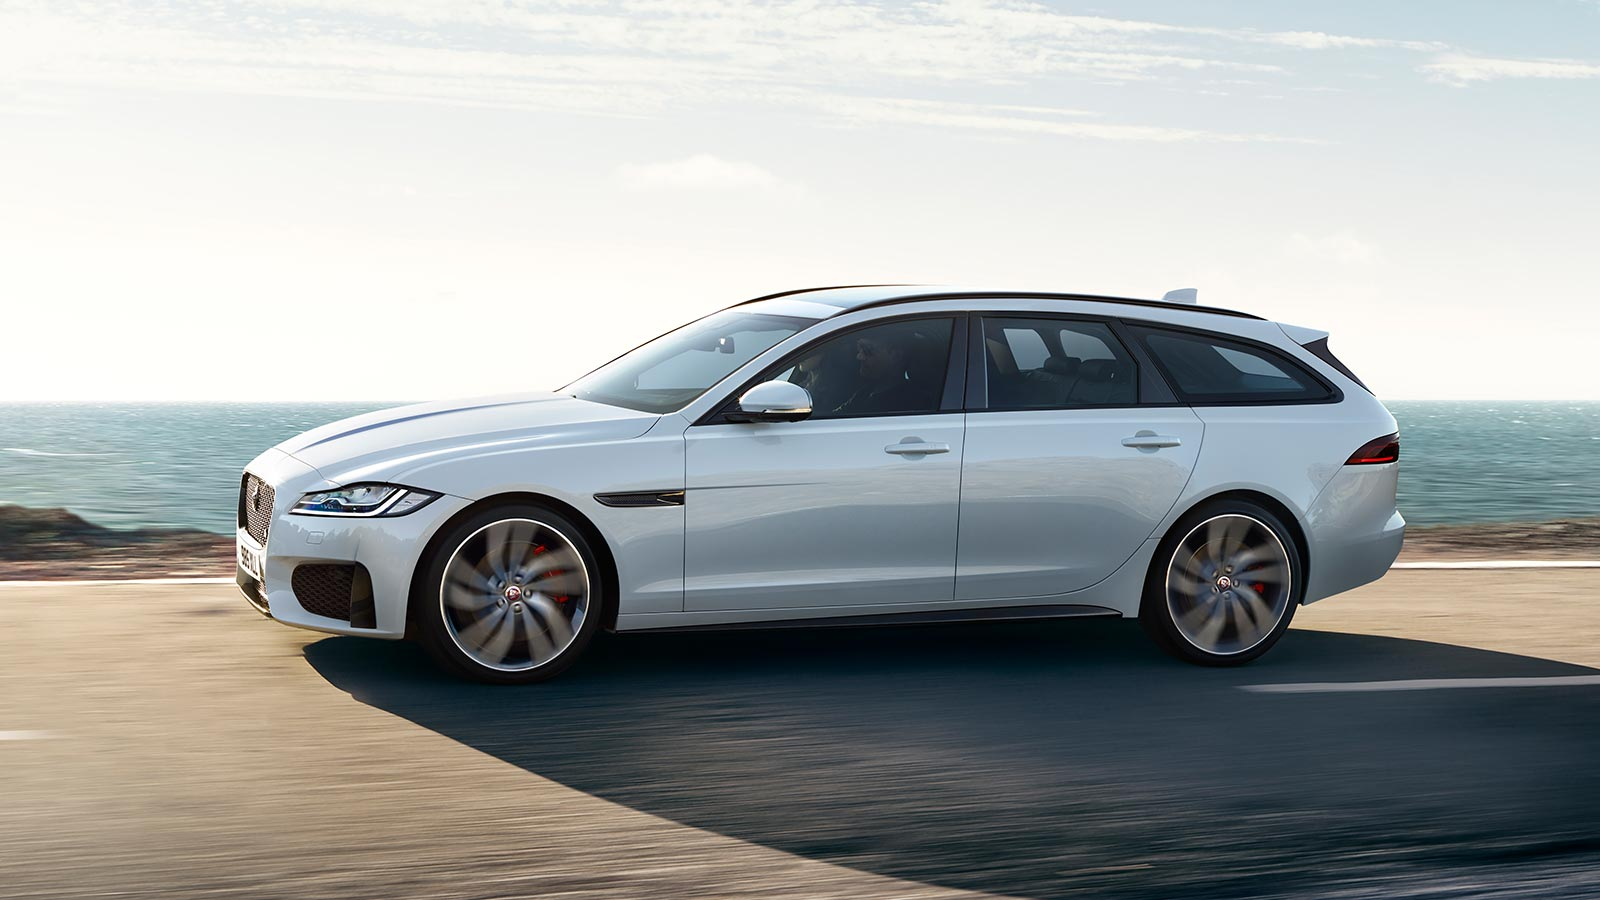 Jaguar XF 2.0d (180) Chequered Flag SPECIAL EDITIONS image 4